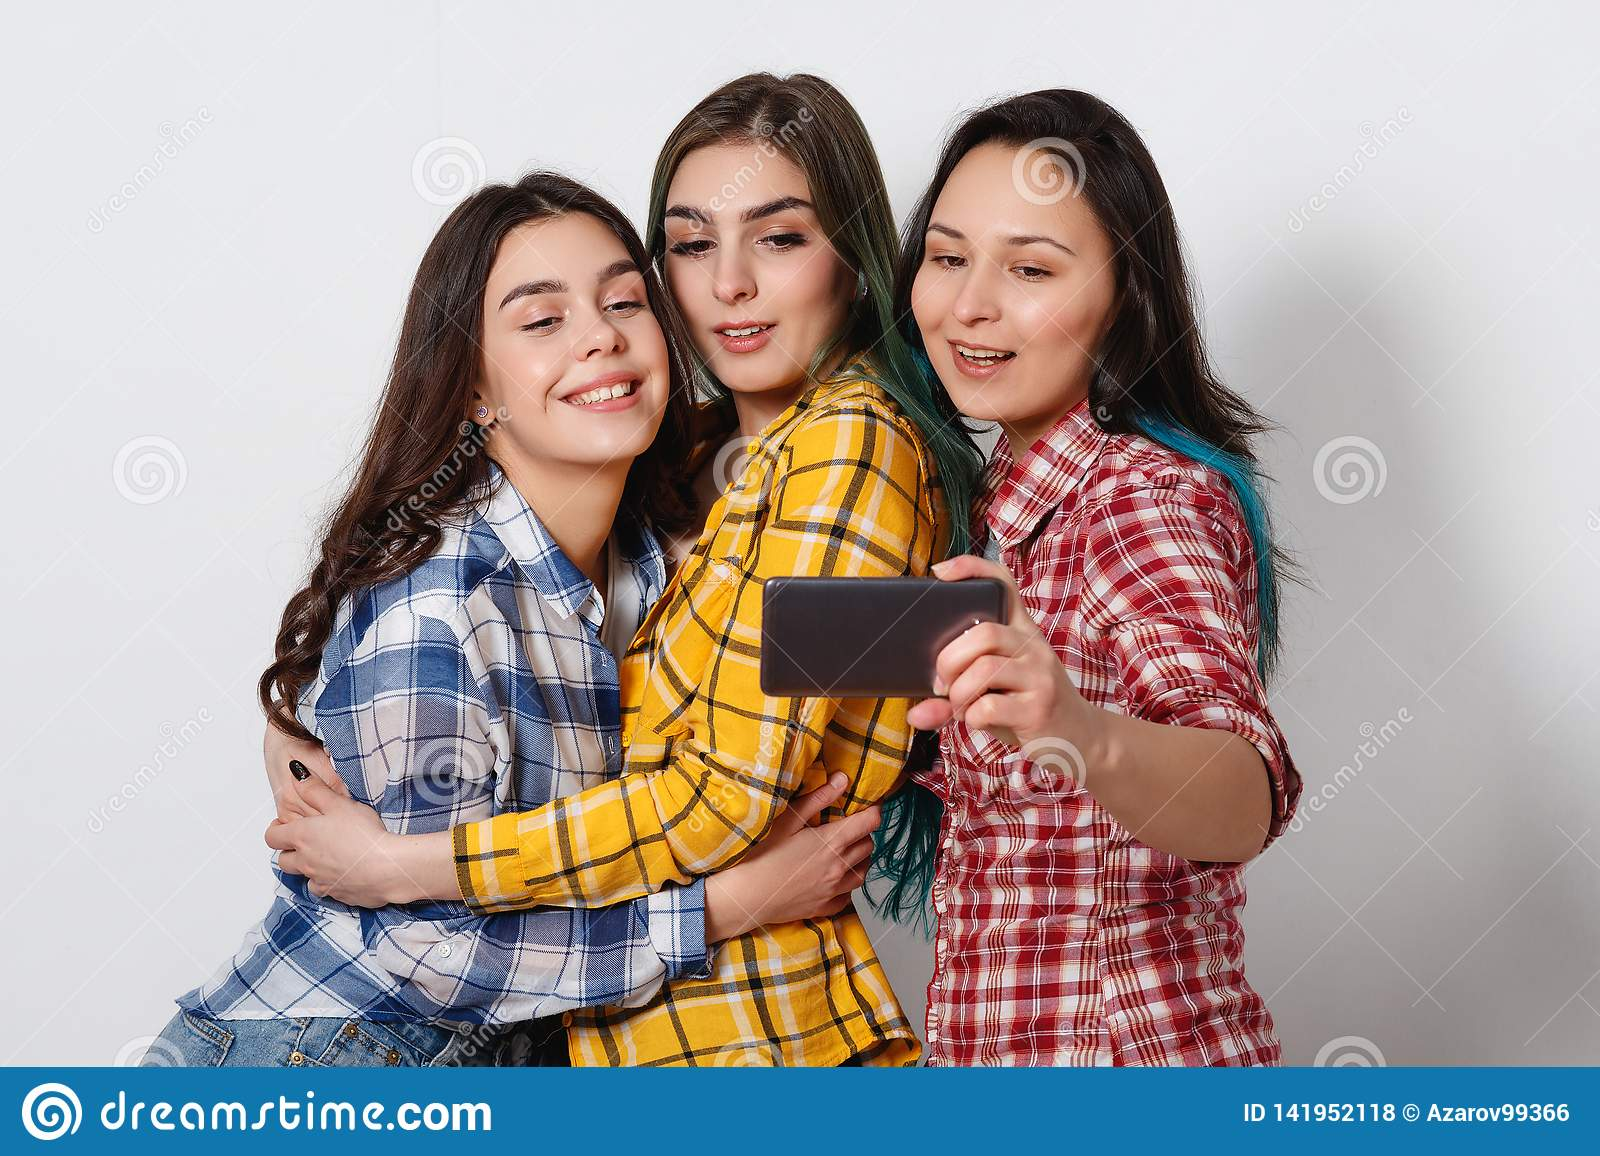 Selfie - Happy teenagers woman taking pictures by themselves on white background